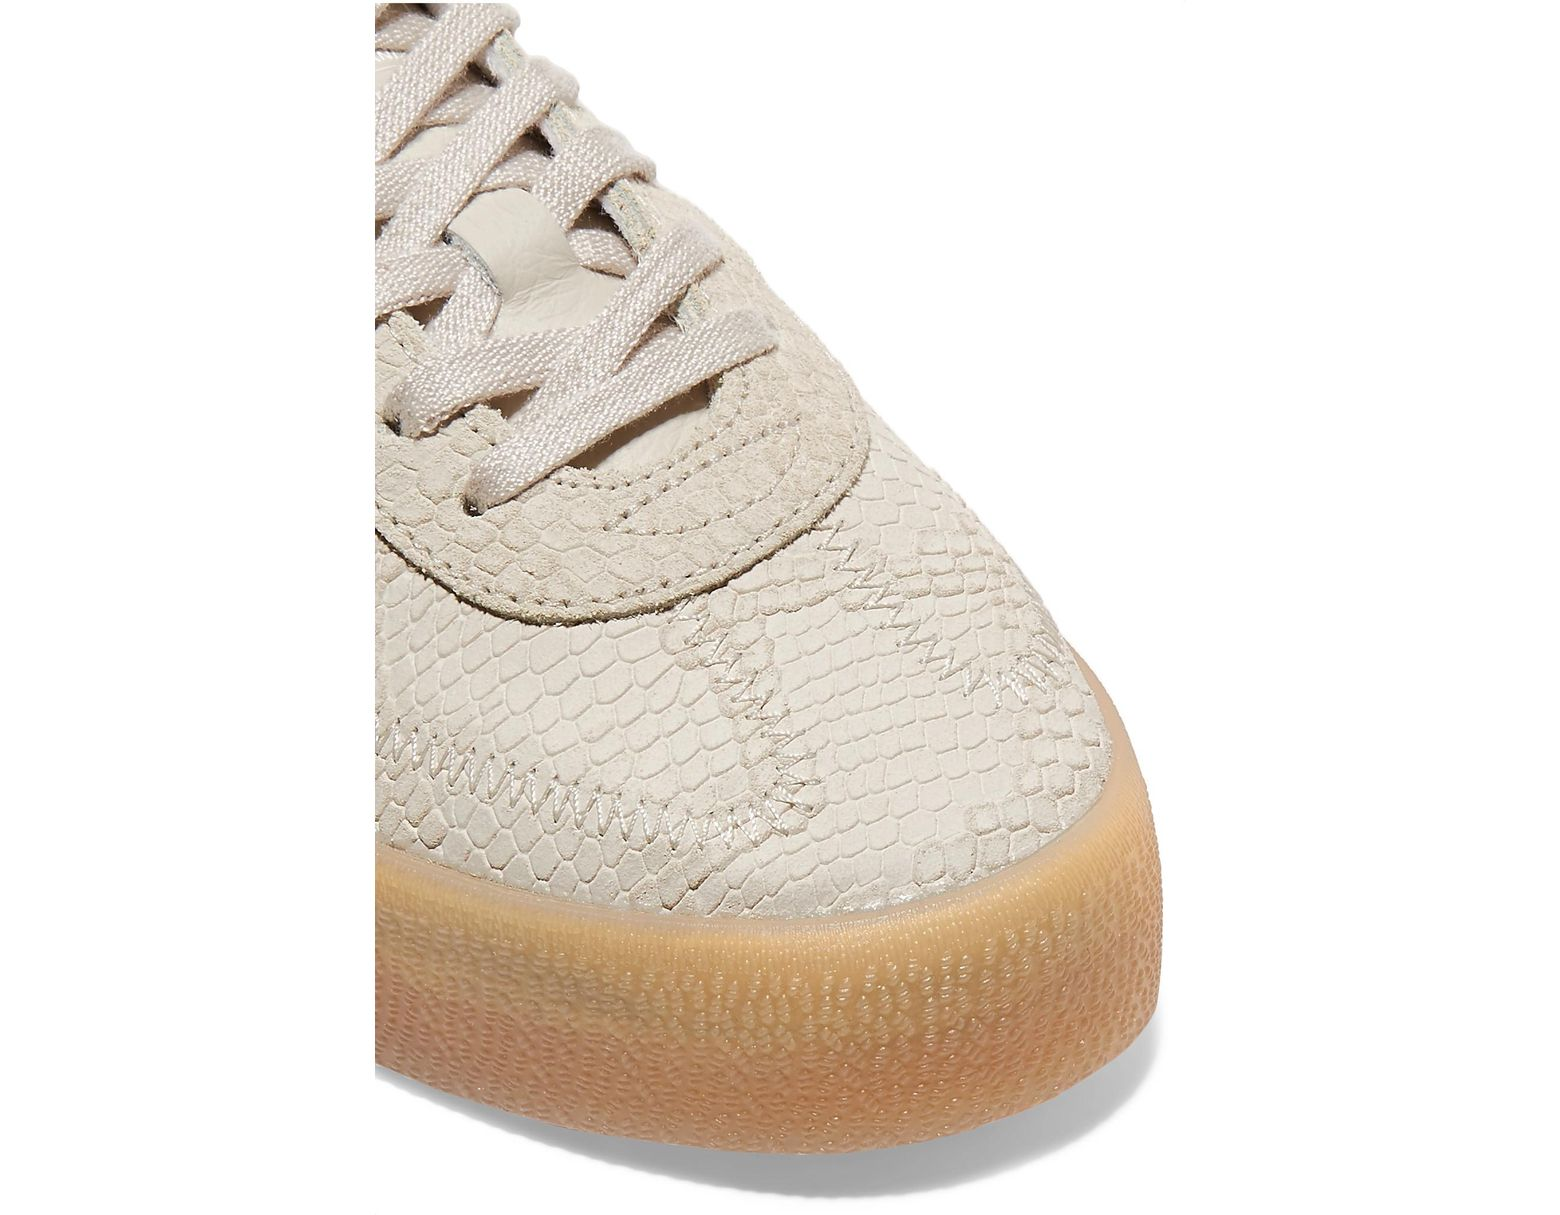 013f7f491fb2 adidas Originals Samba Rose Snake-effect Suede And Leather Platform  Sneakers in Brown - Lyst